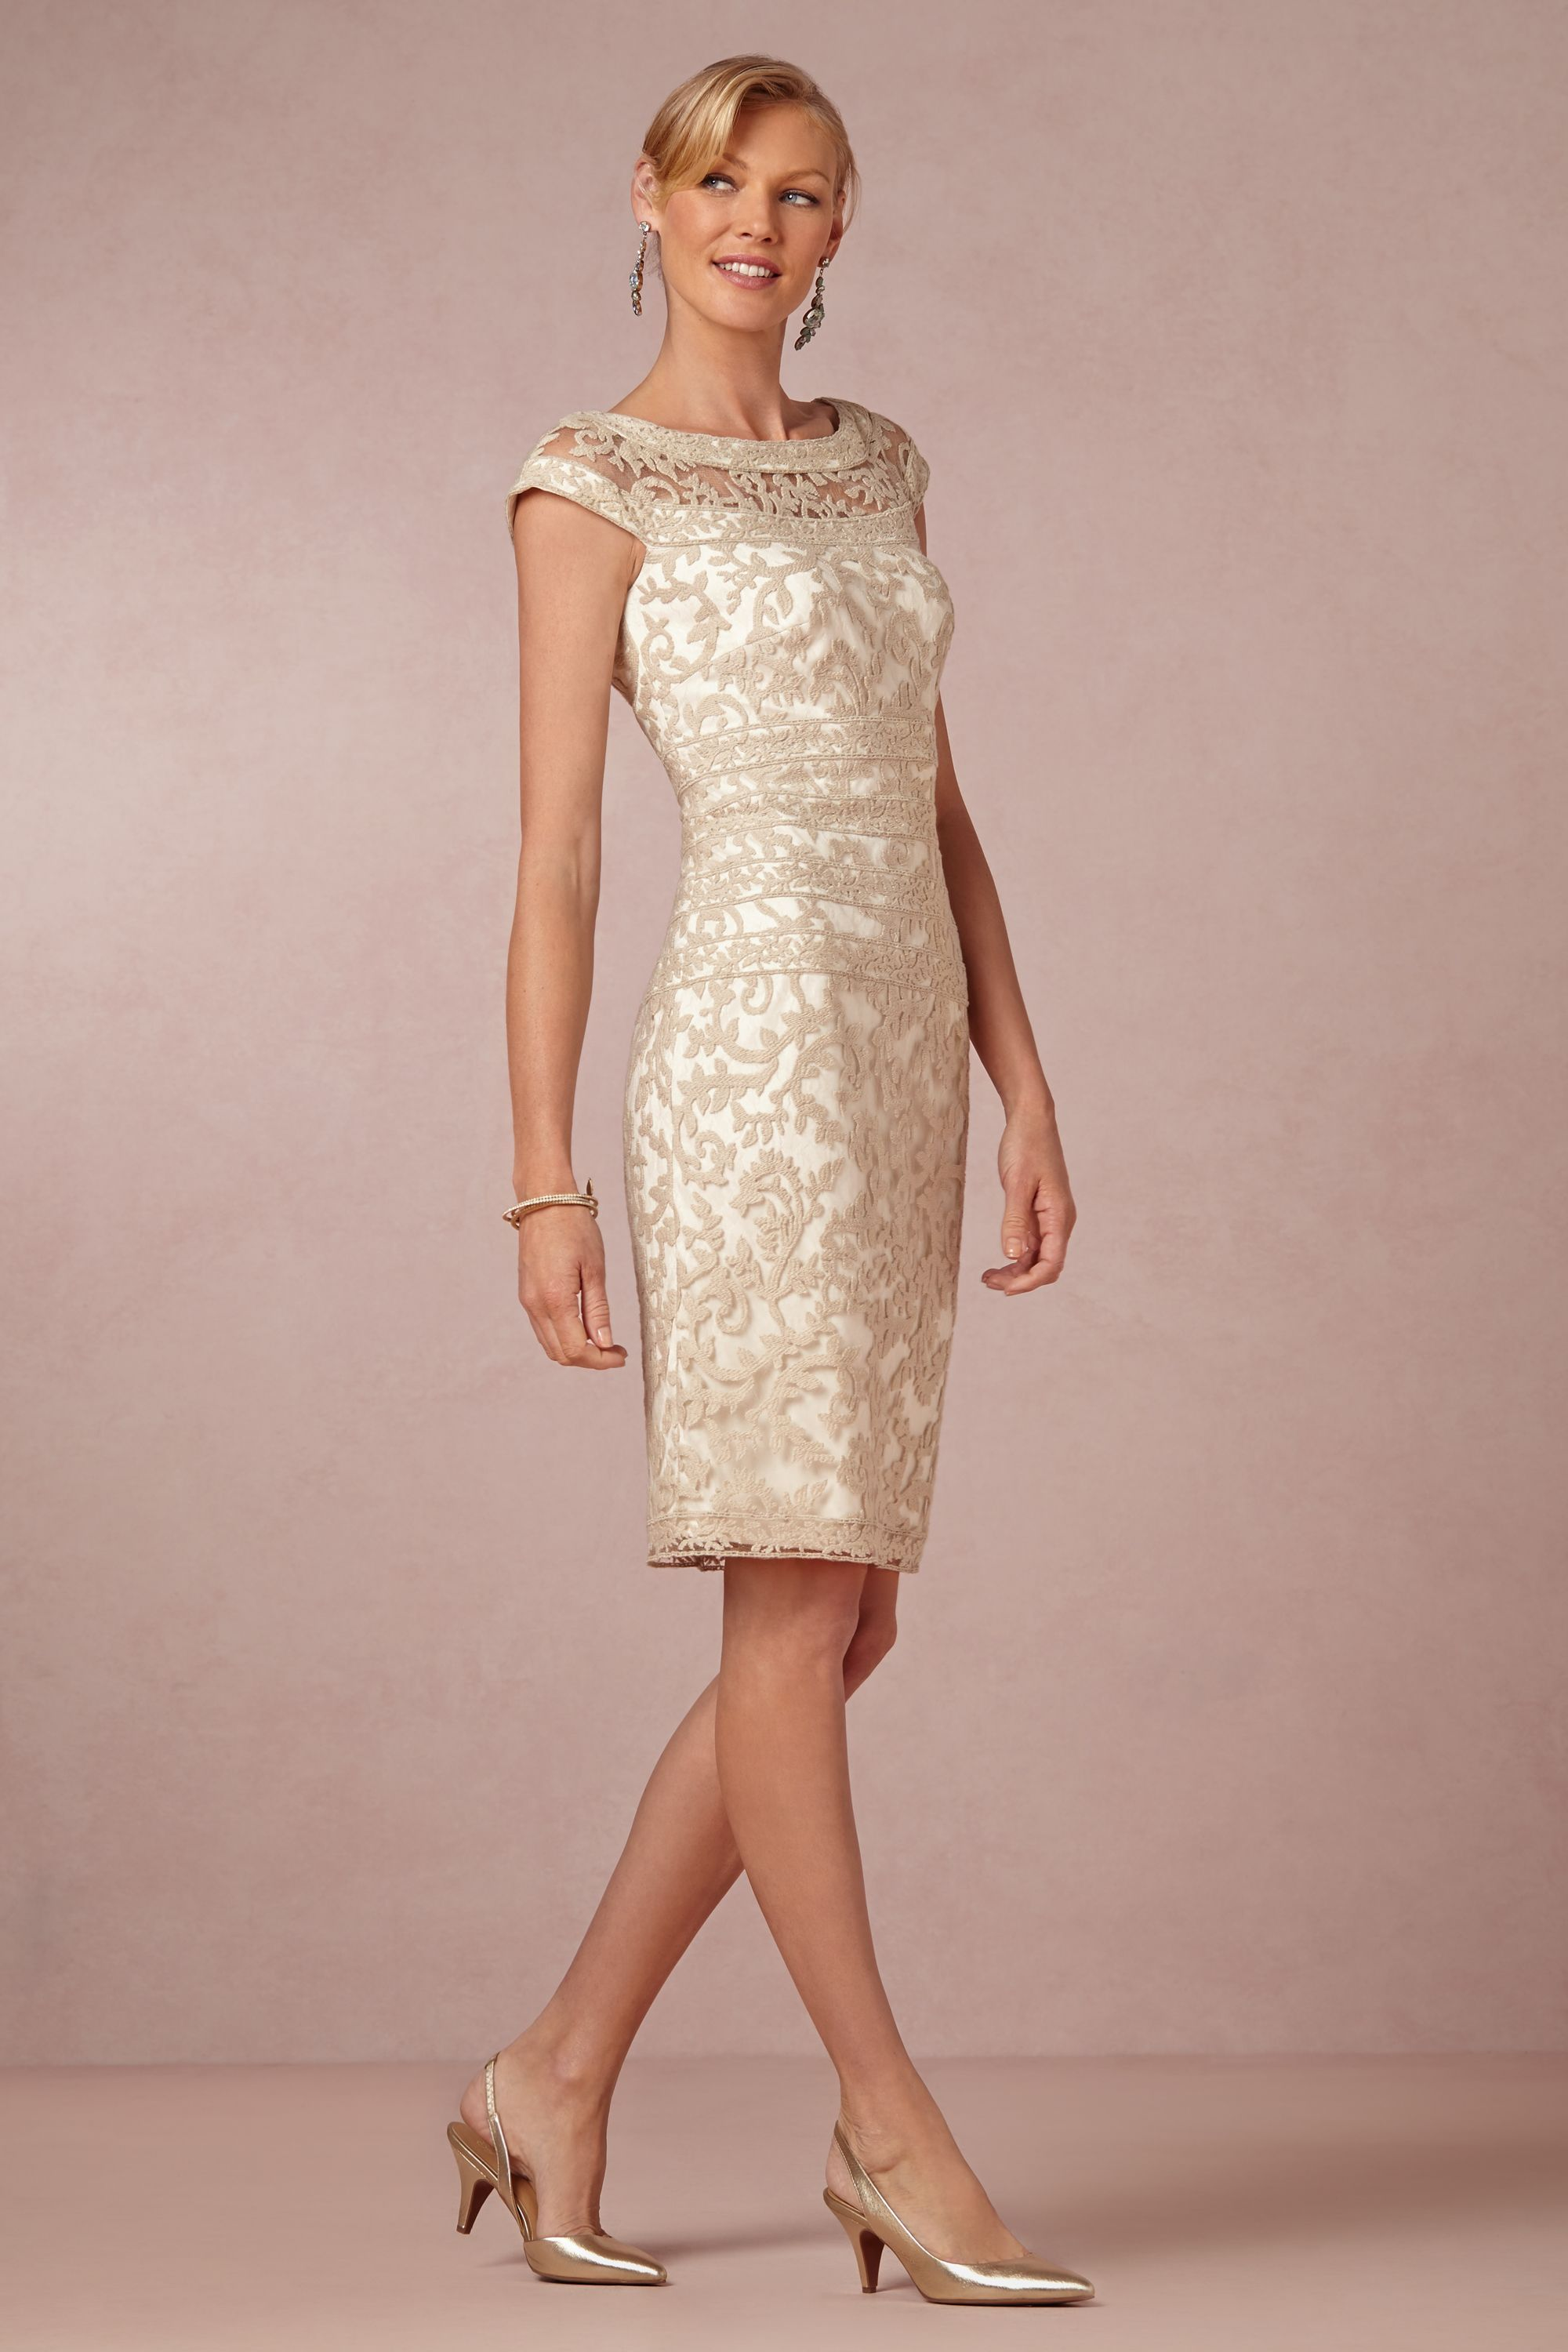 Kinley Dress from BHLDN | MOB dresses | Pinterest | Tejido ...